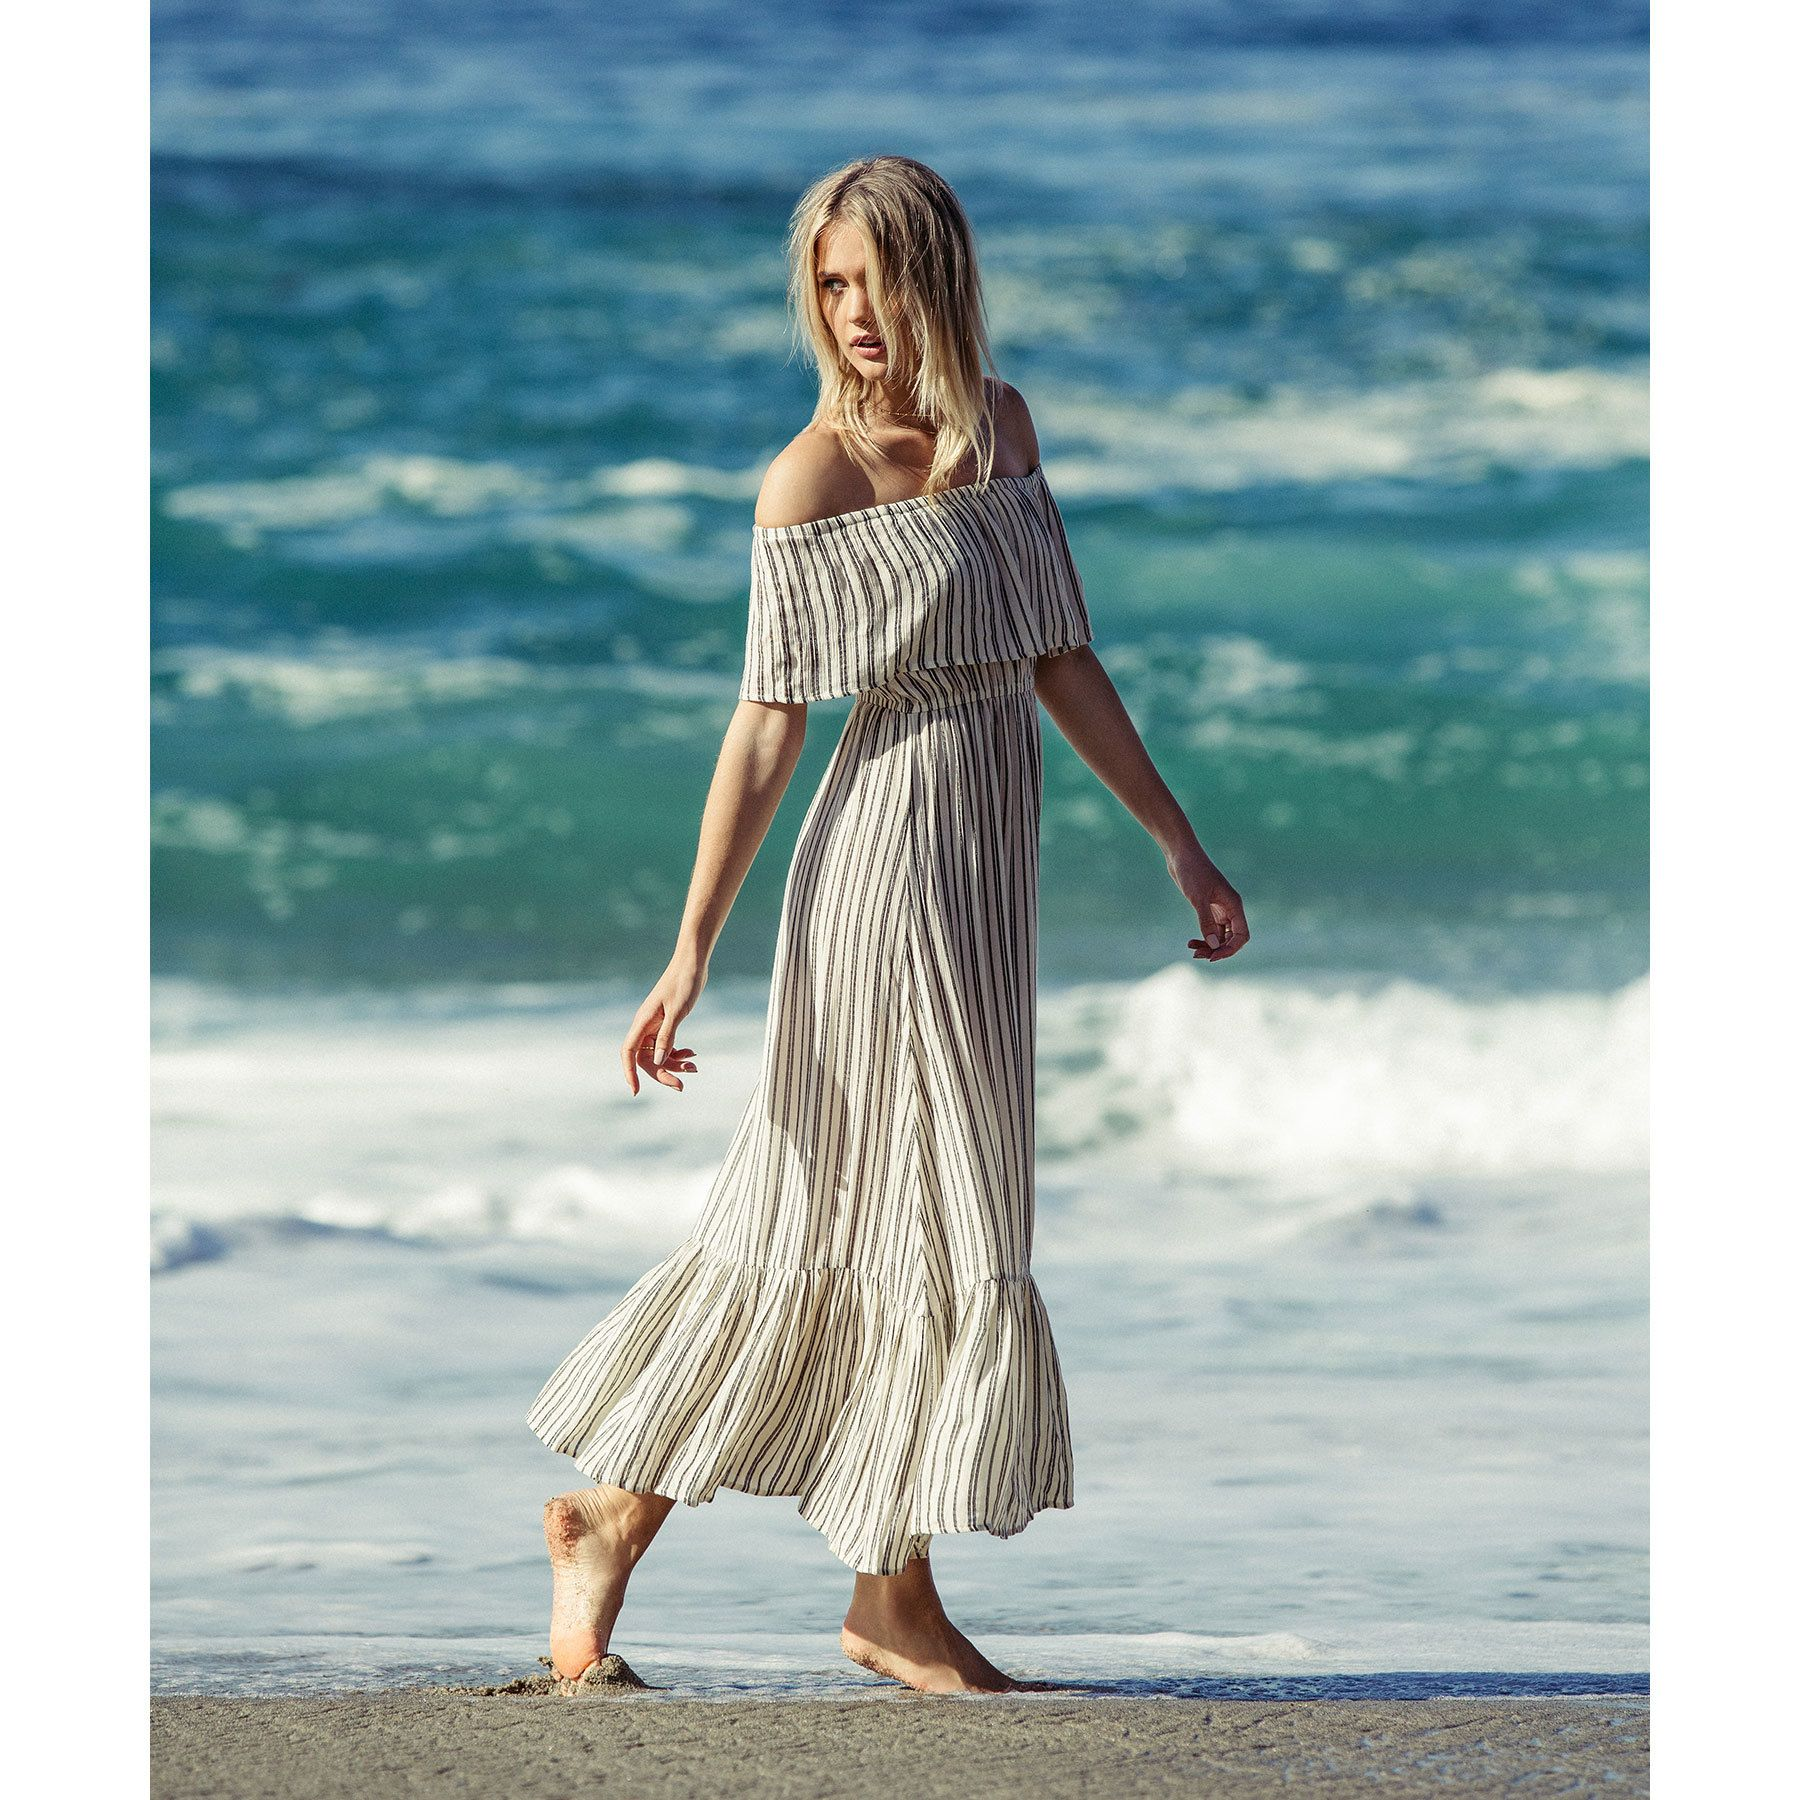 Get Free Shipping At The Billabong Online Store Show Off Summer Tan Lines In This Effortless Strapless Maxi Dress Dresses Girls Dresses Strapless Maxi Dress [ 1800 x 1800 Pixel ]